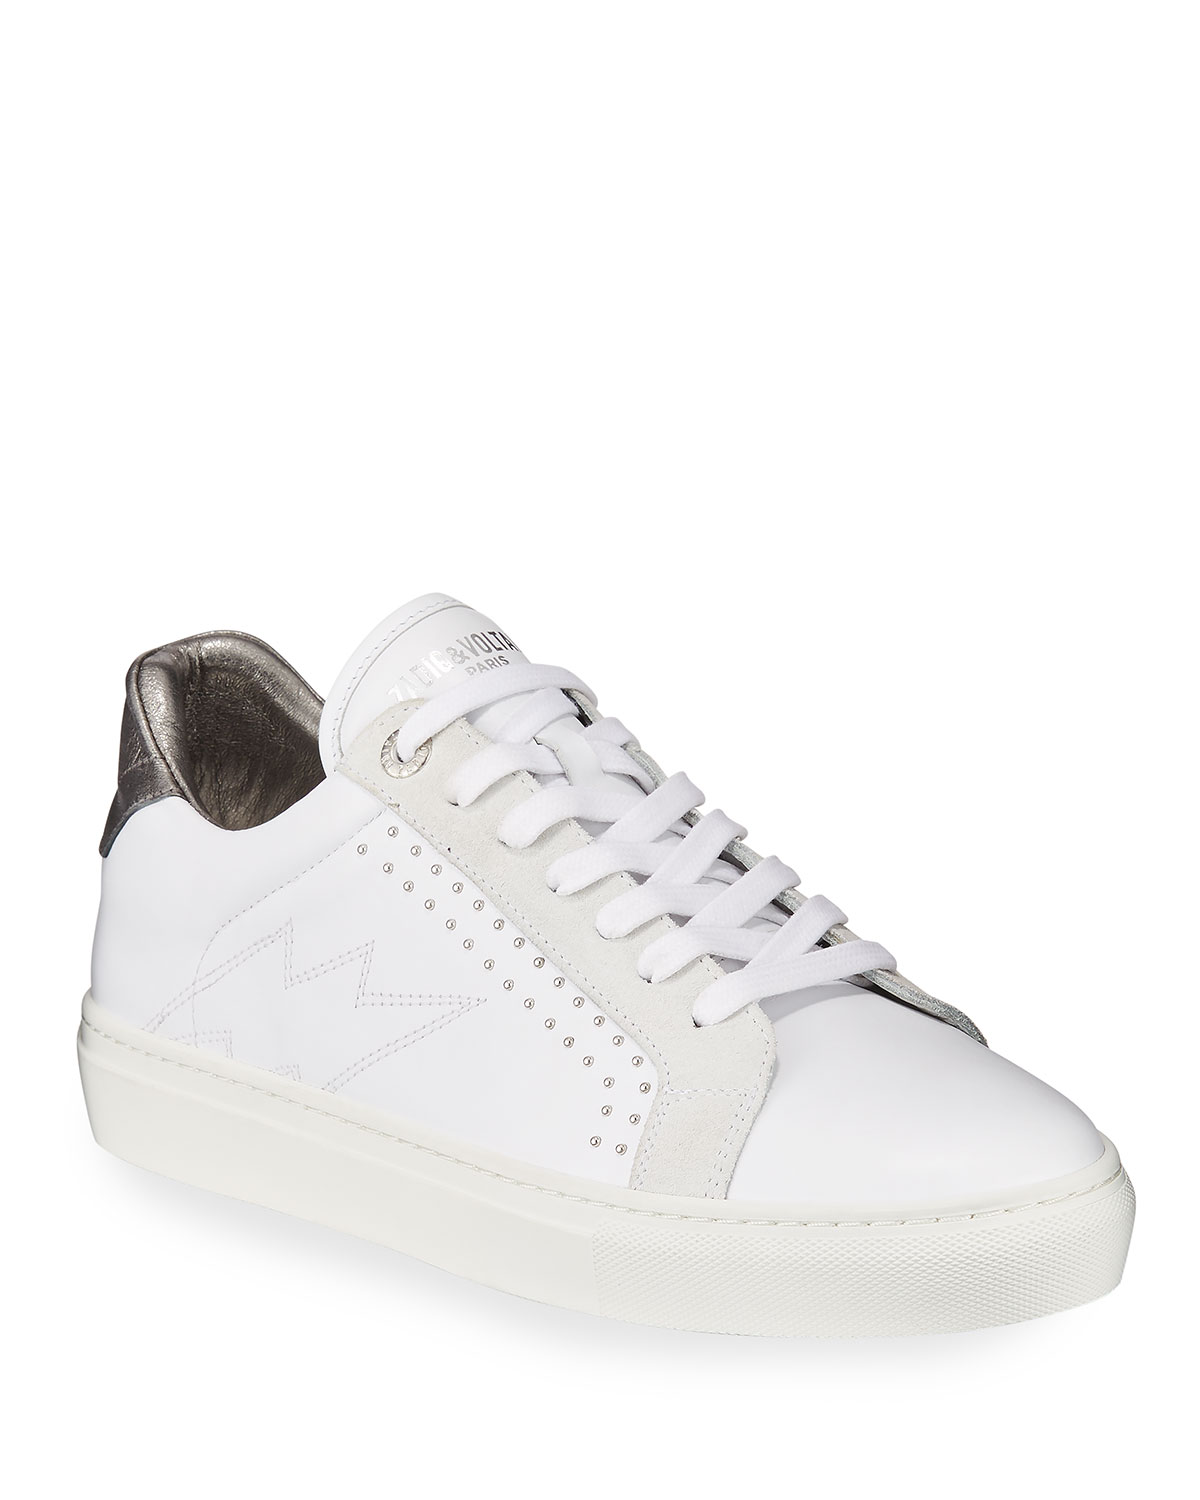 Zadig & Voltaire Sneakers ZV1747 LOW-TOP SNEAKERS